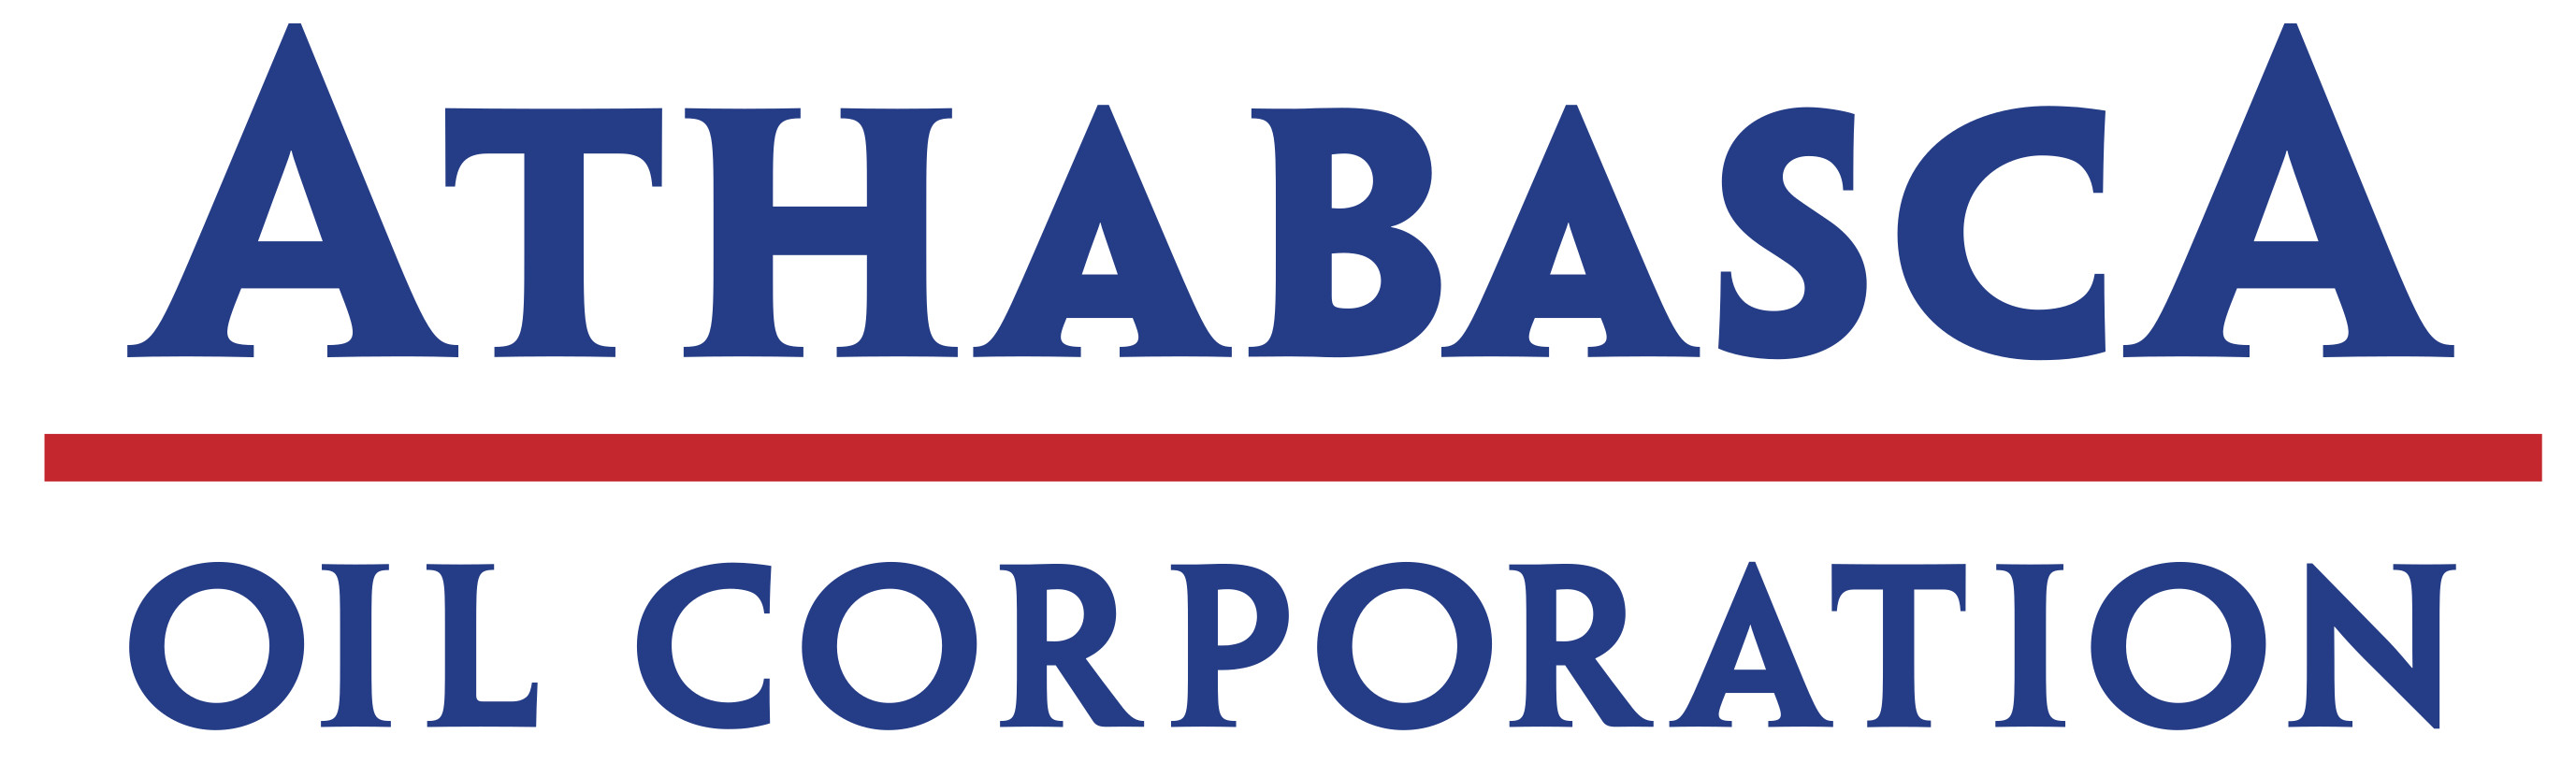 Athabasca Oil Corporation Announces 2019 Third Quarter Results - BOE Report